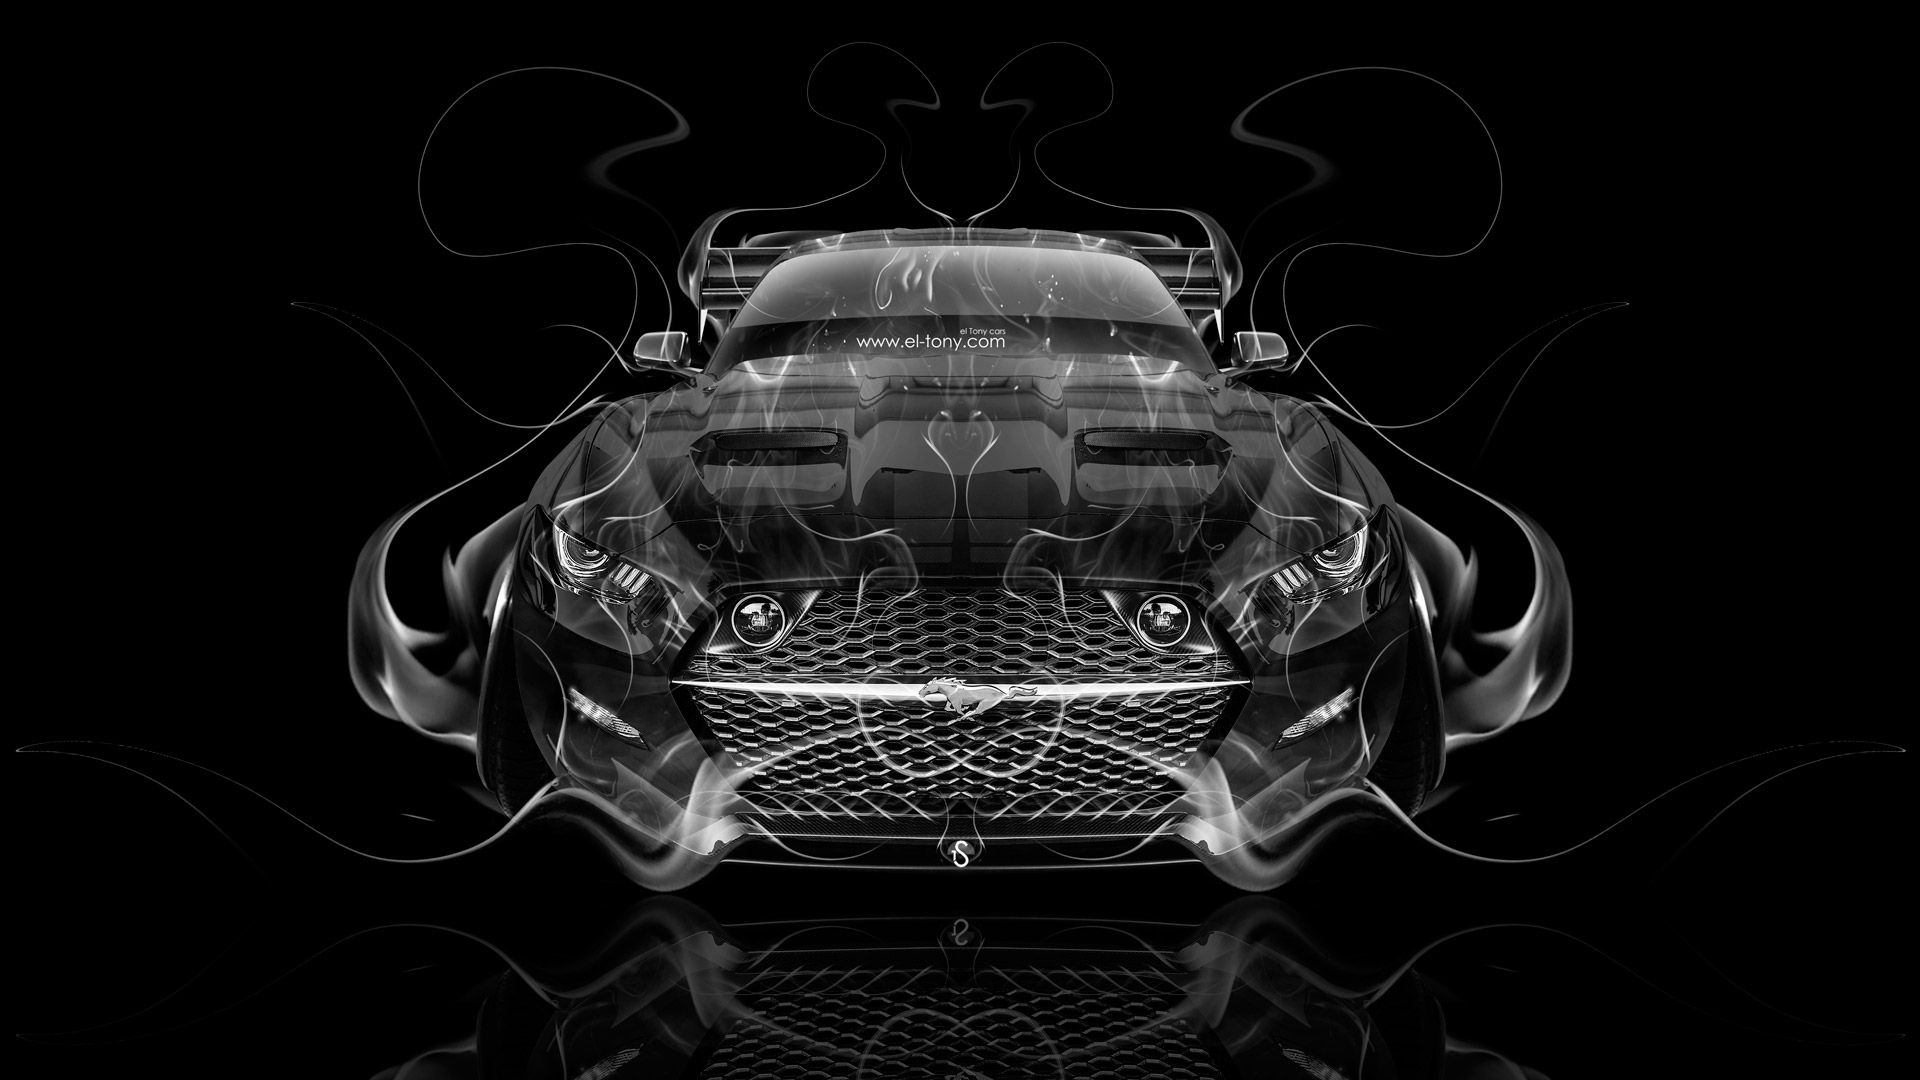 Charmant Ford Mustang Muscle Back Fire Abstract Car 2014 Art HD Wallpapers Design By Tony Kokhan [www.el Tony.com]  | El Tony.com | Pinterest | Ford Mustang, ...